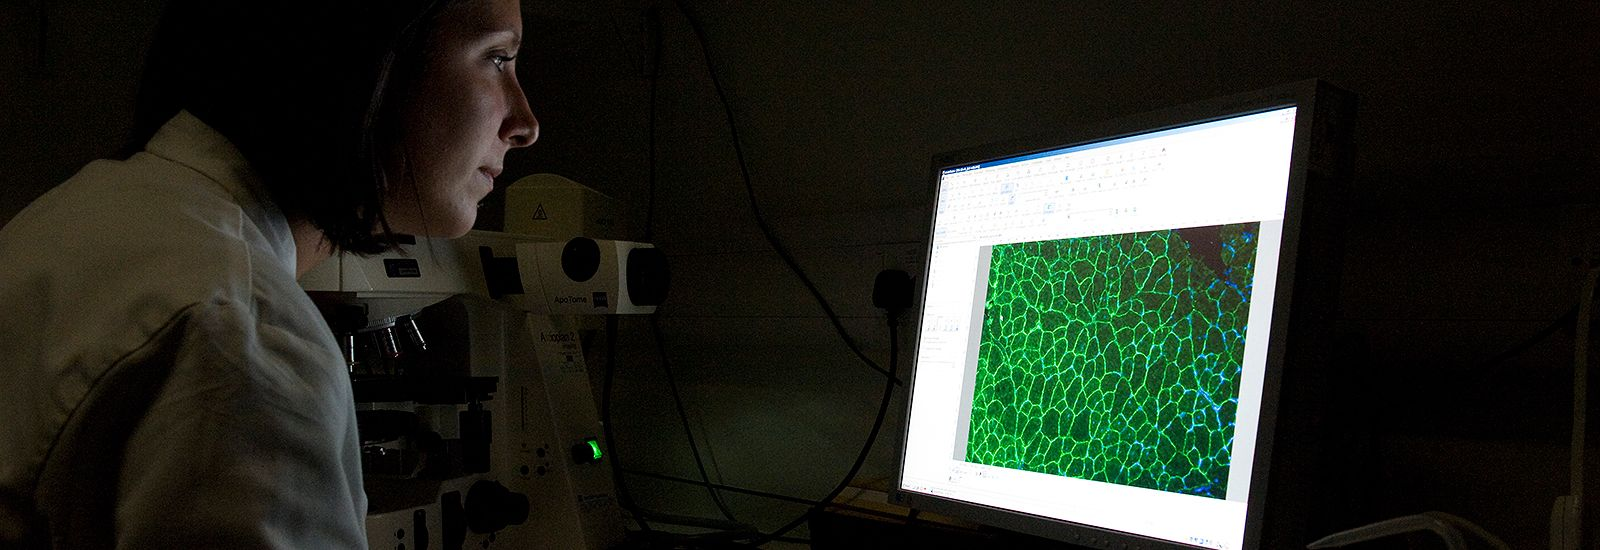 A student looking at microscopic image on screen